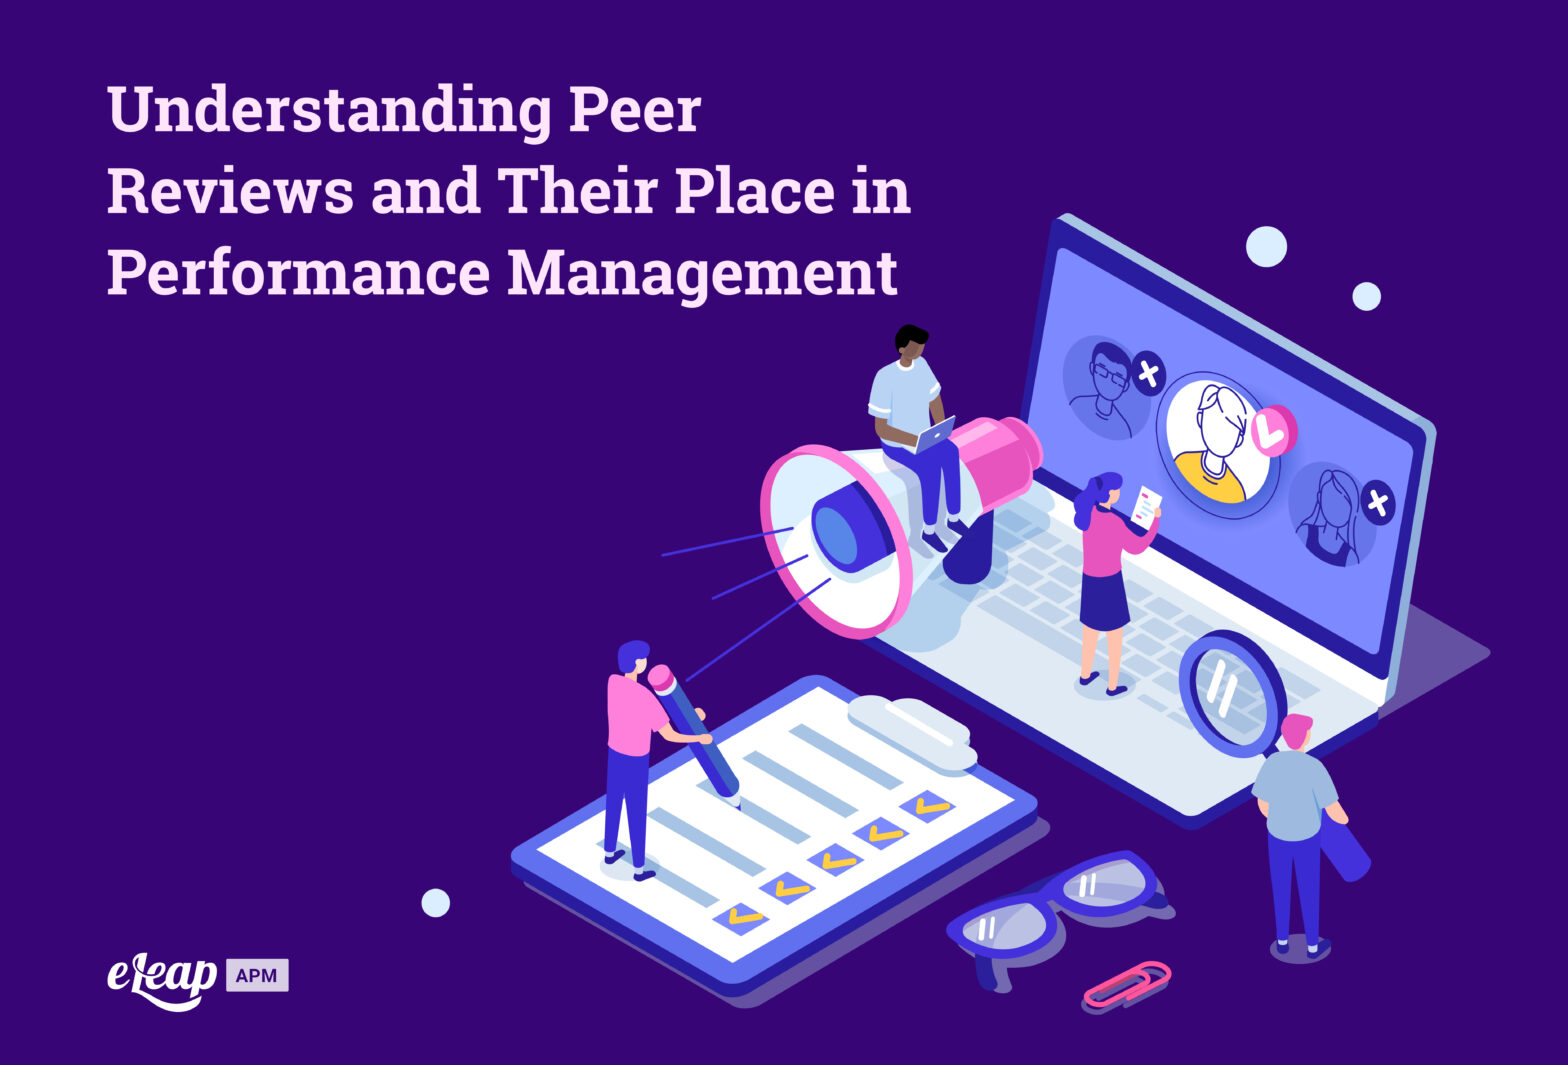 Understanding Peer Reviews and Their Place in Performance Management